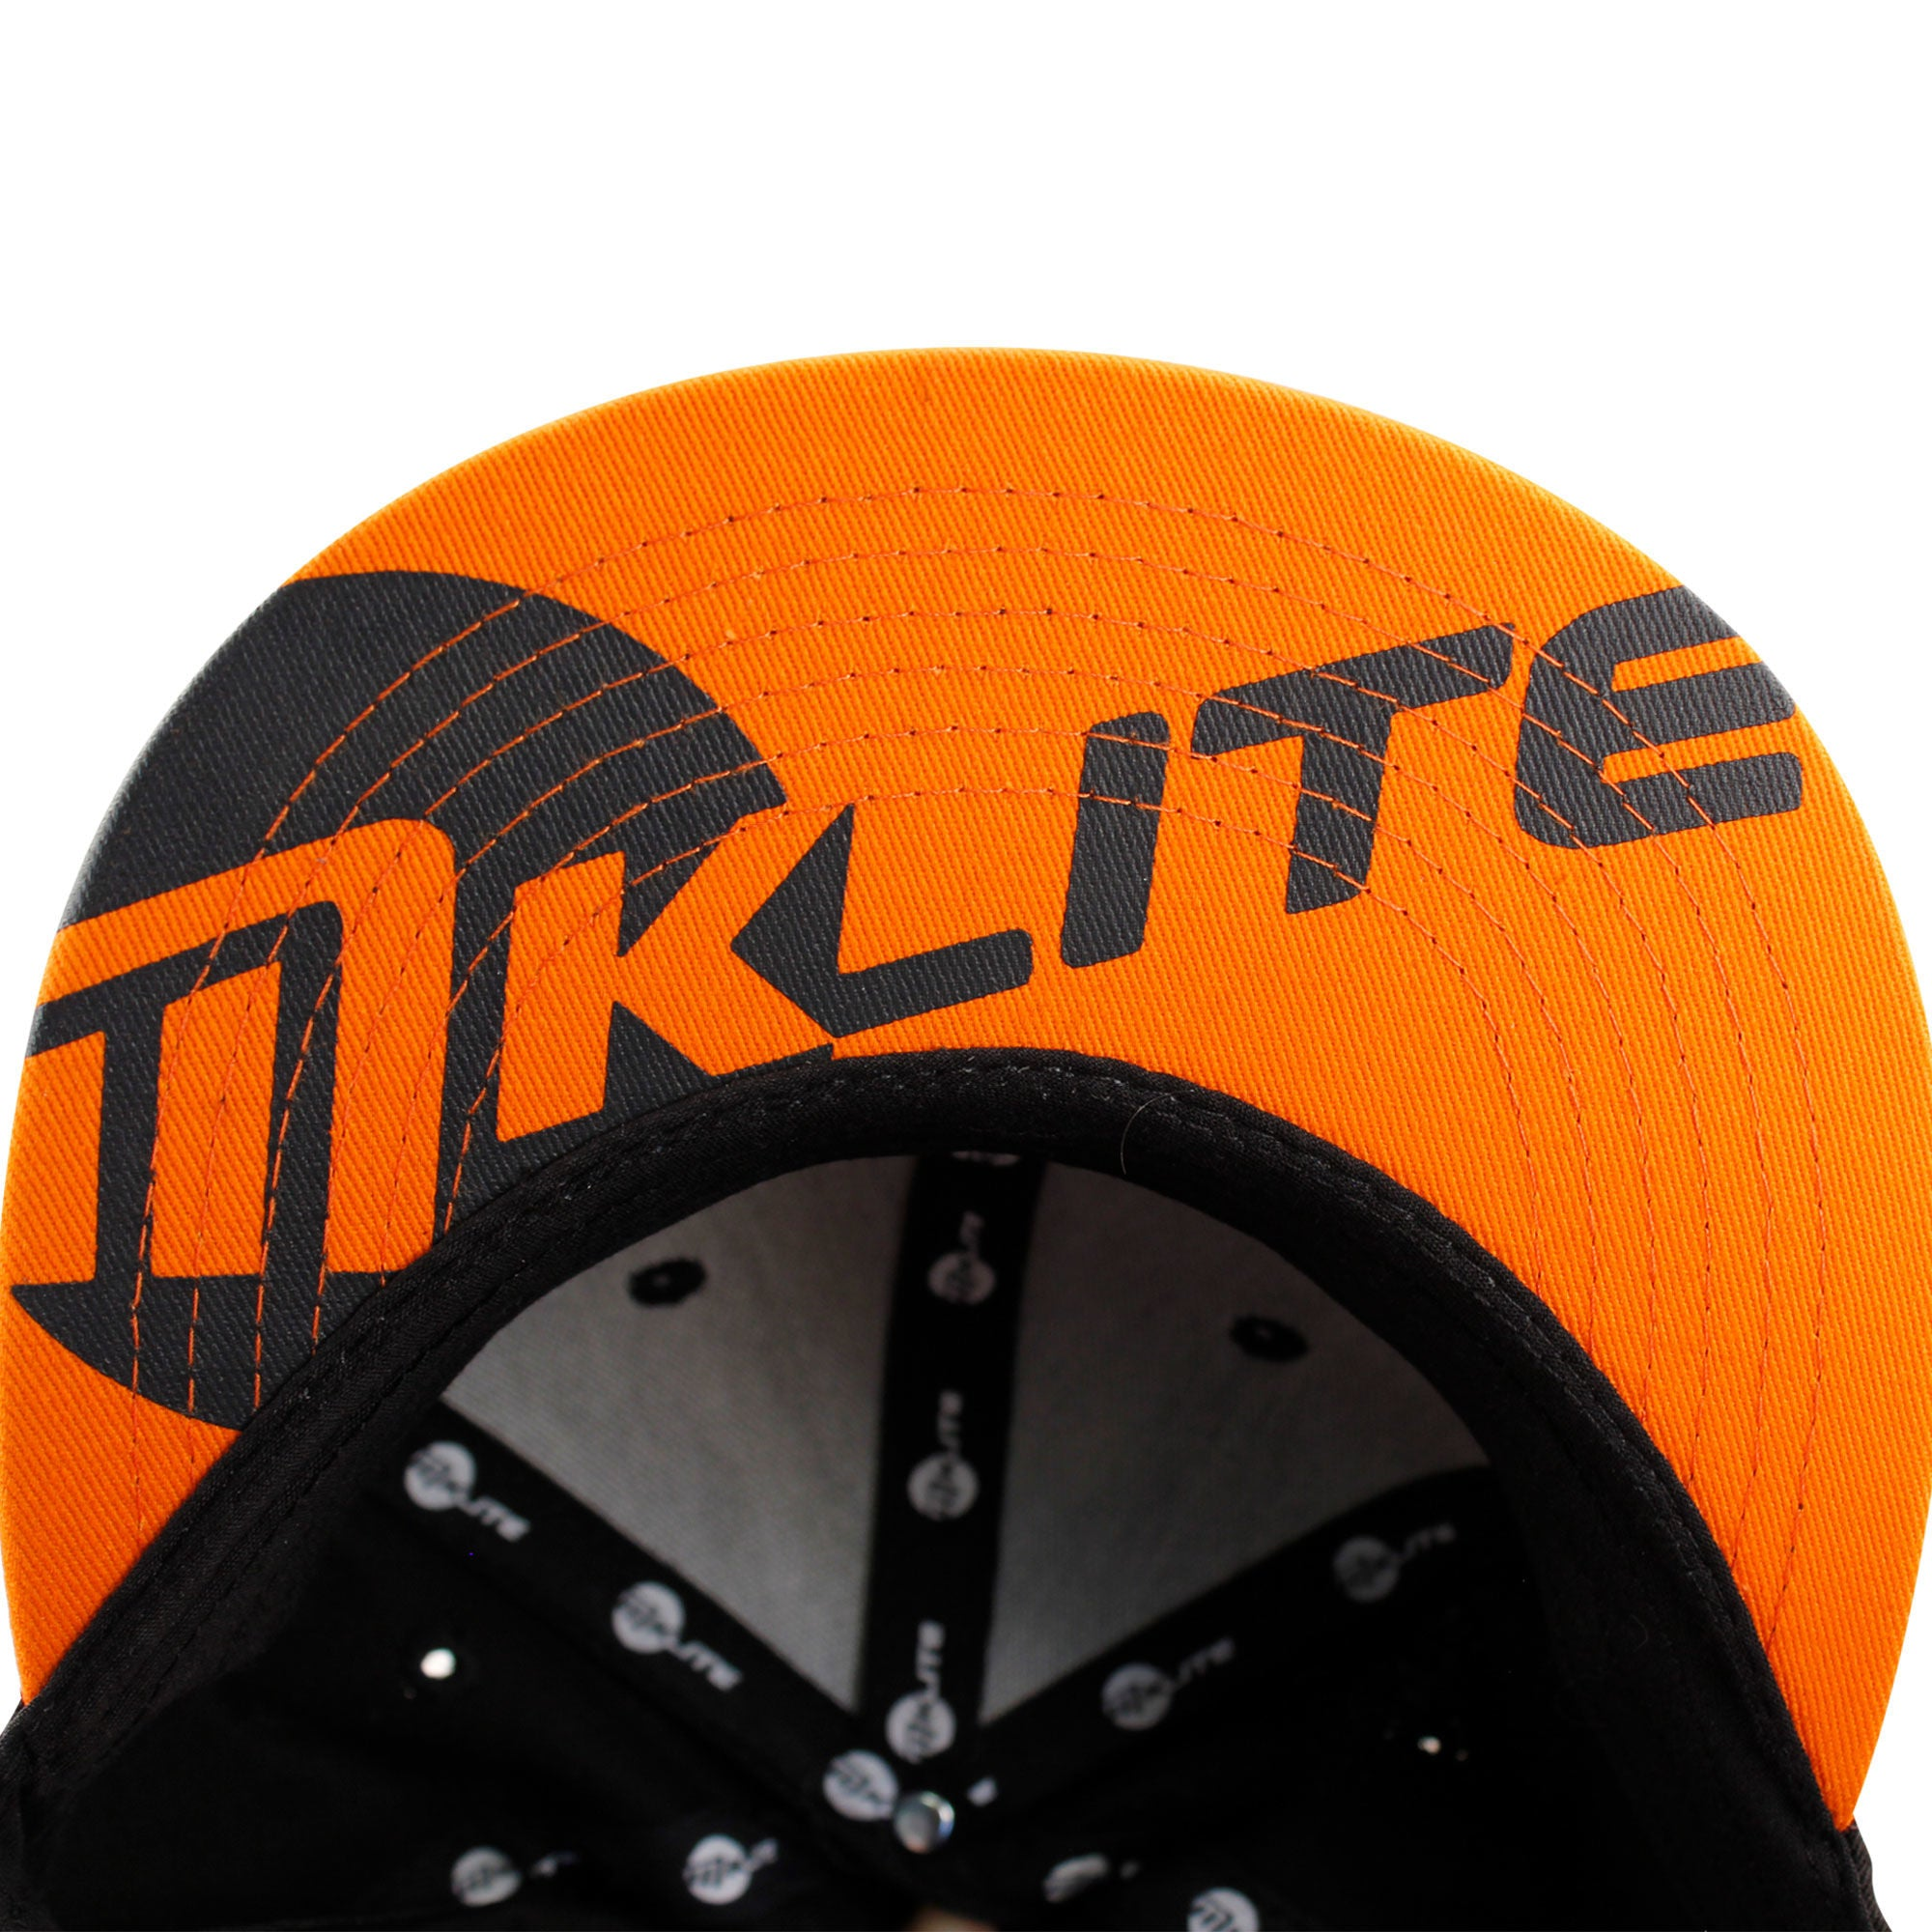 MK Lite Baseball Cap - Event Stuff Ltd Owns Putterfingers.com!